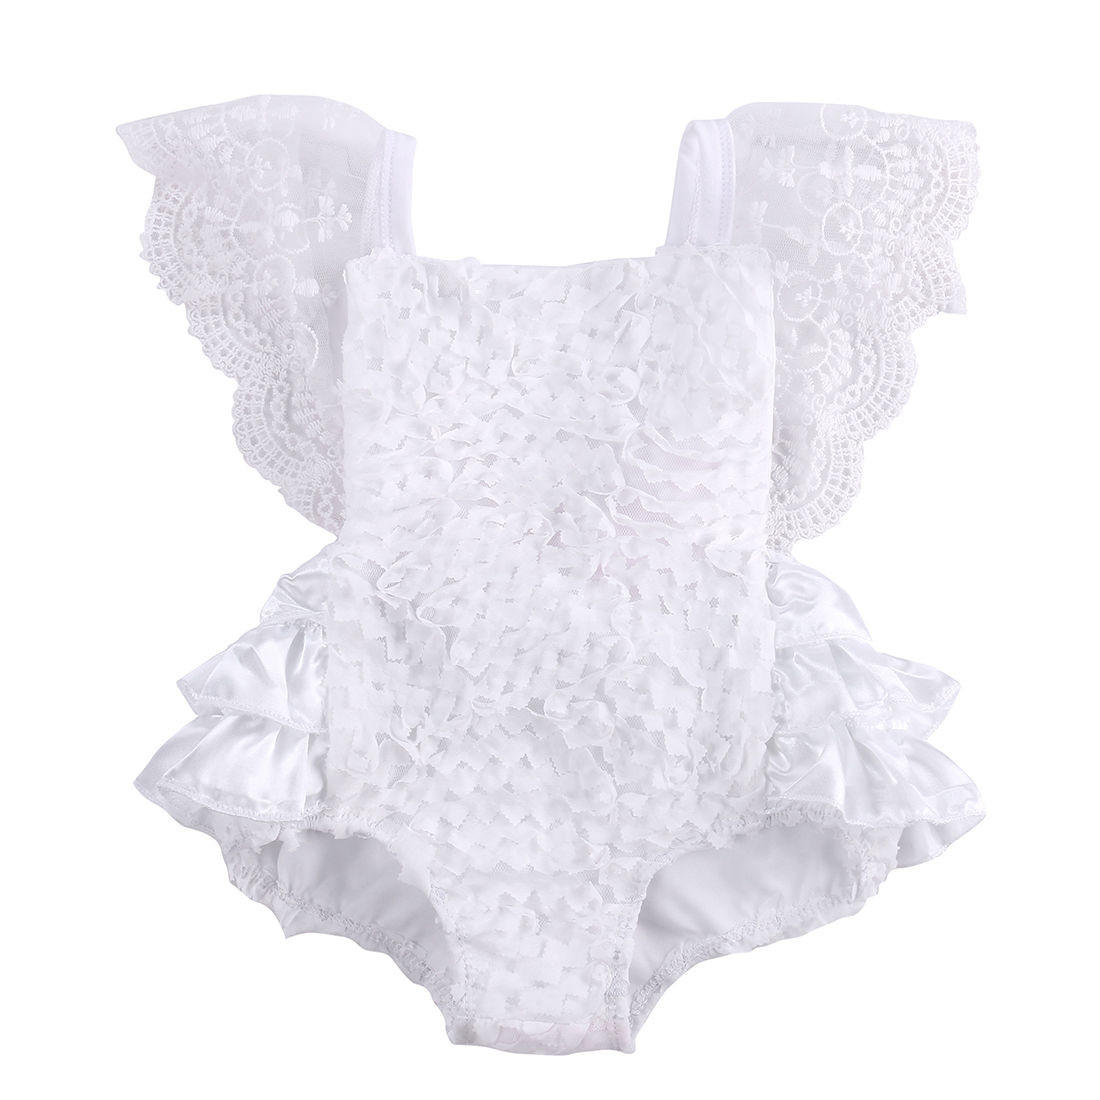 be15a1794 Tirred Cotton Bow Cute White Rompers from Honeybee Line